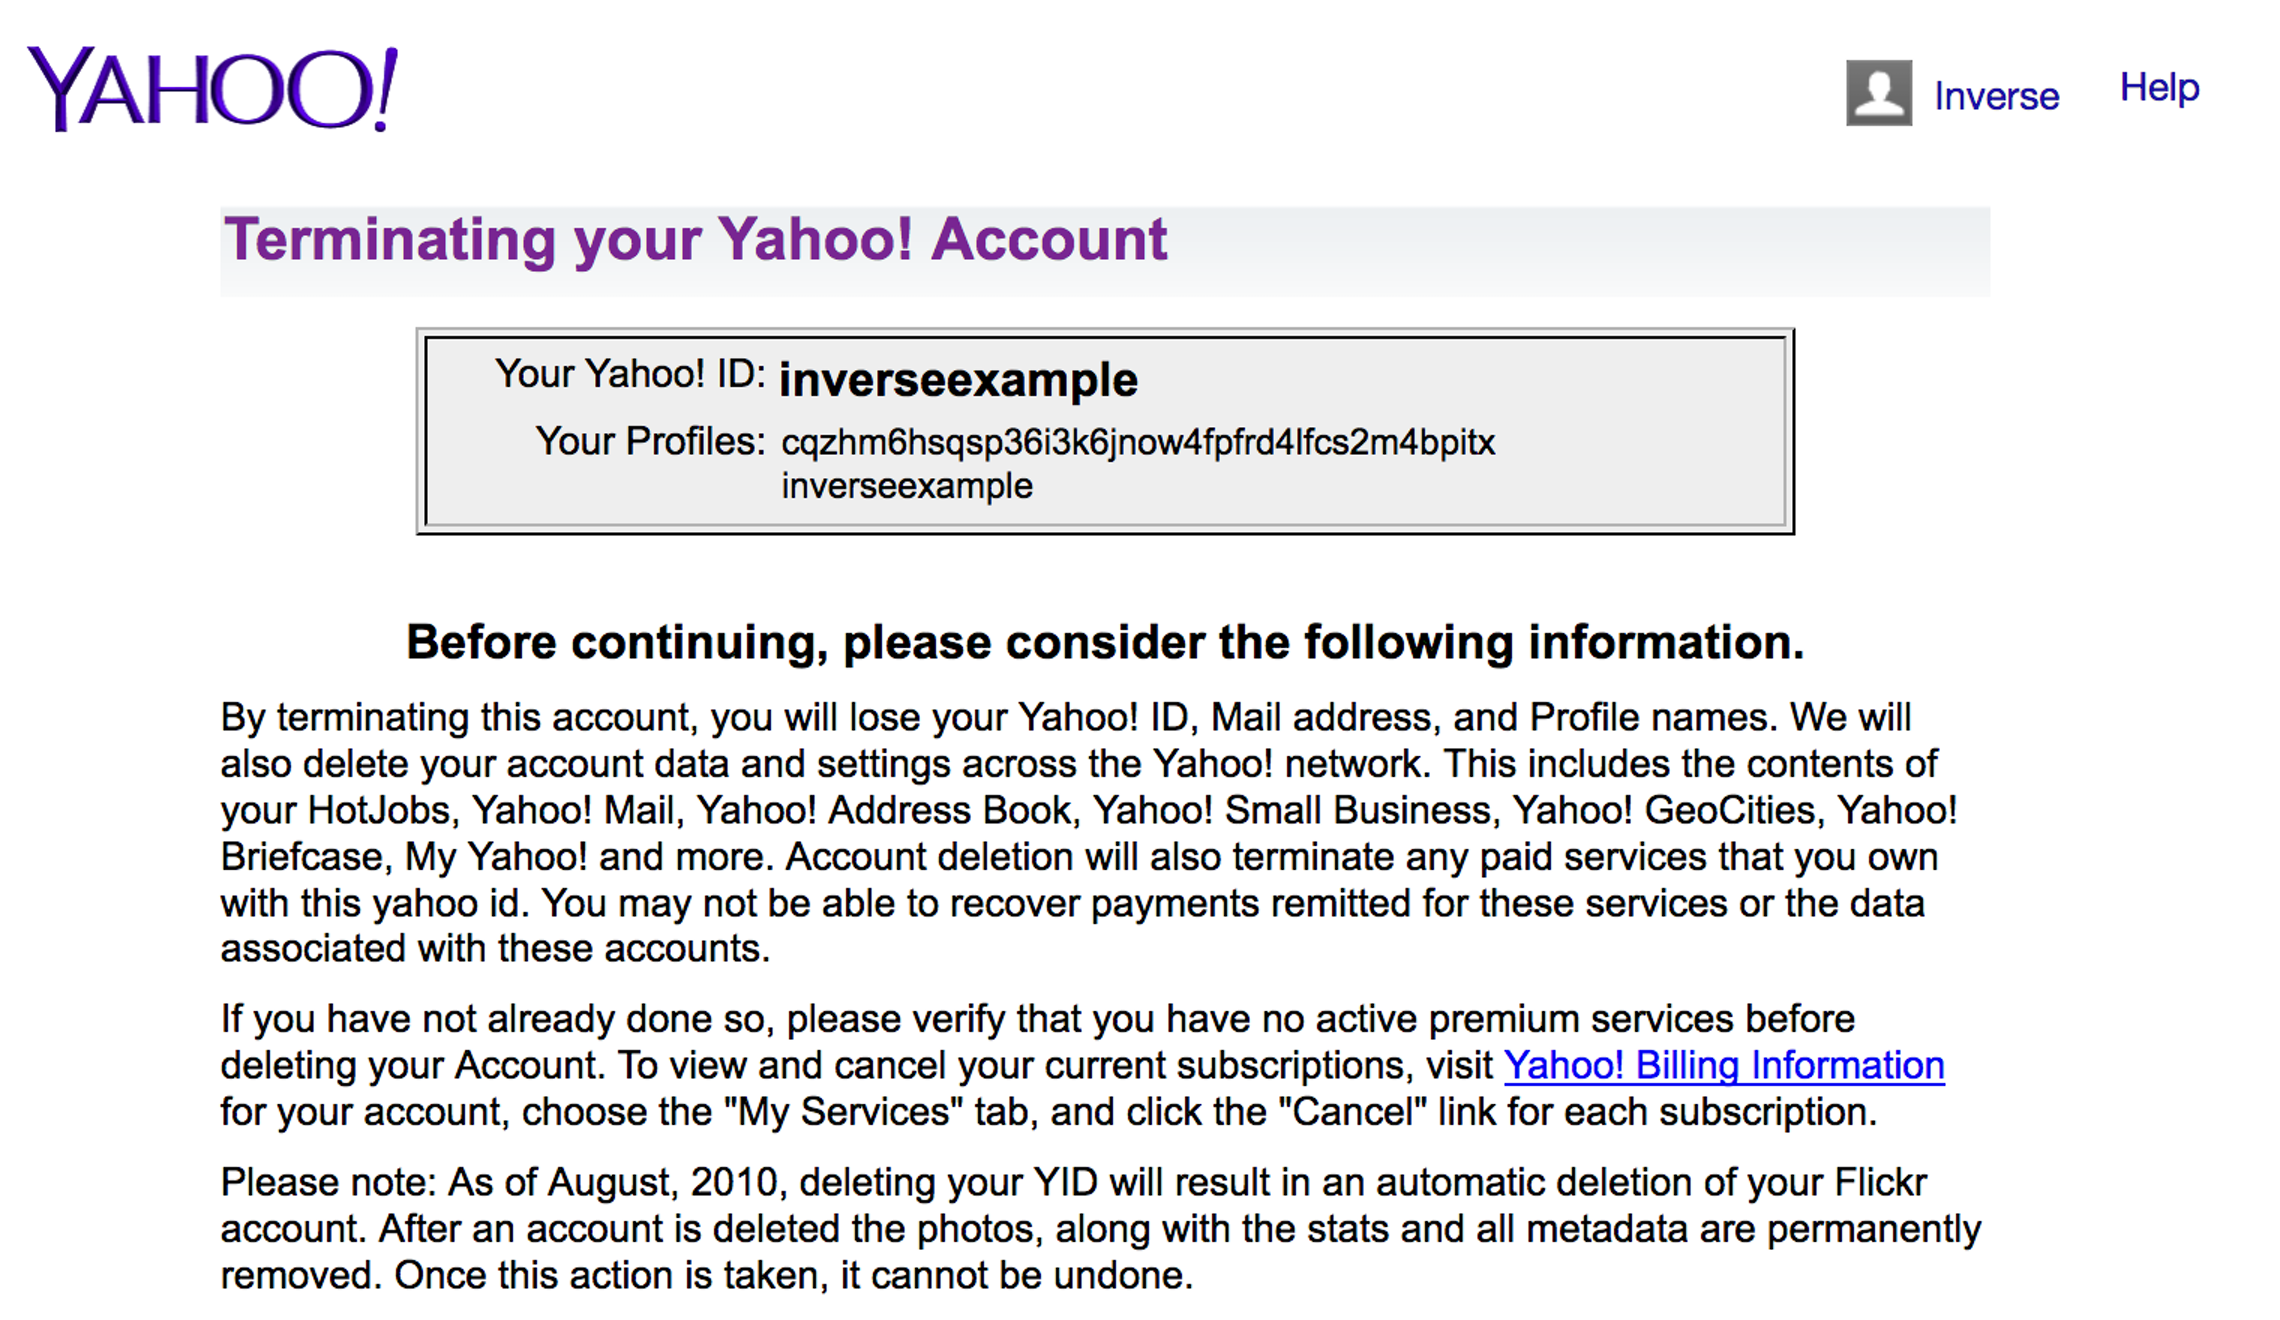 Yahoo tries to discourage users from deleting their accounts.